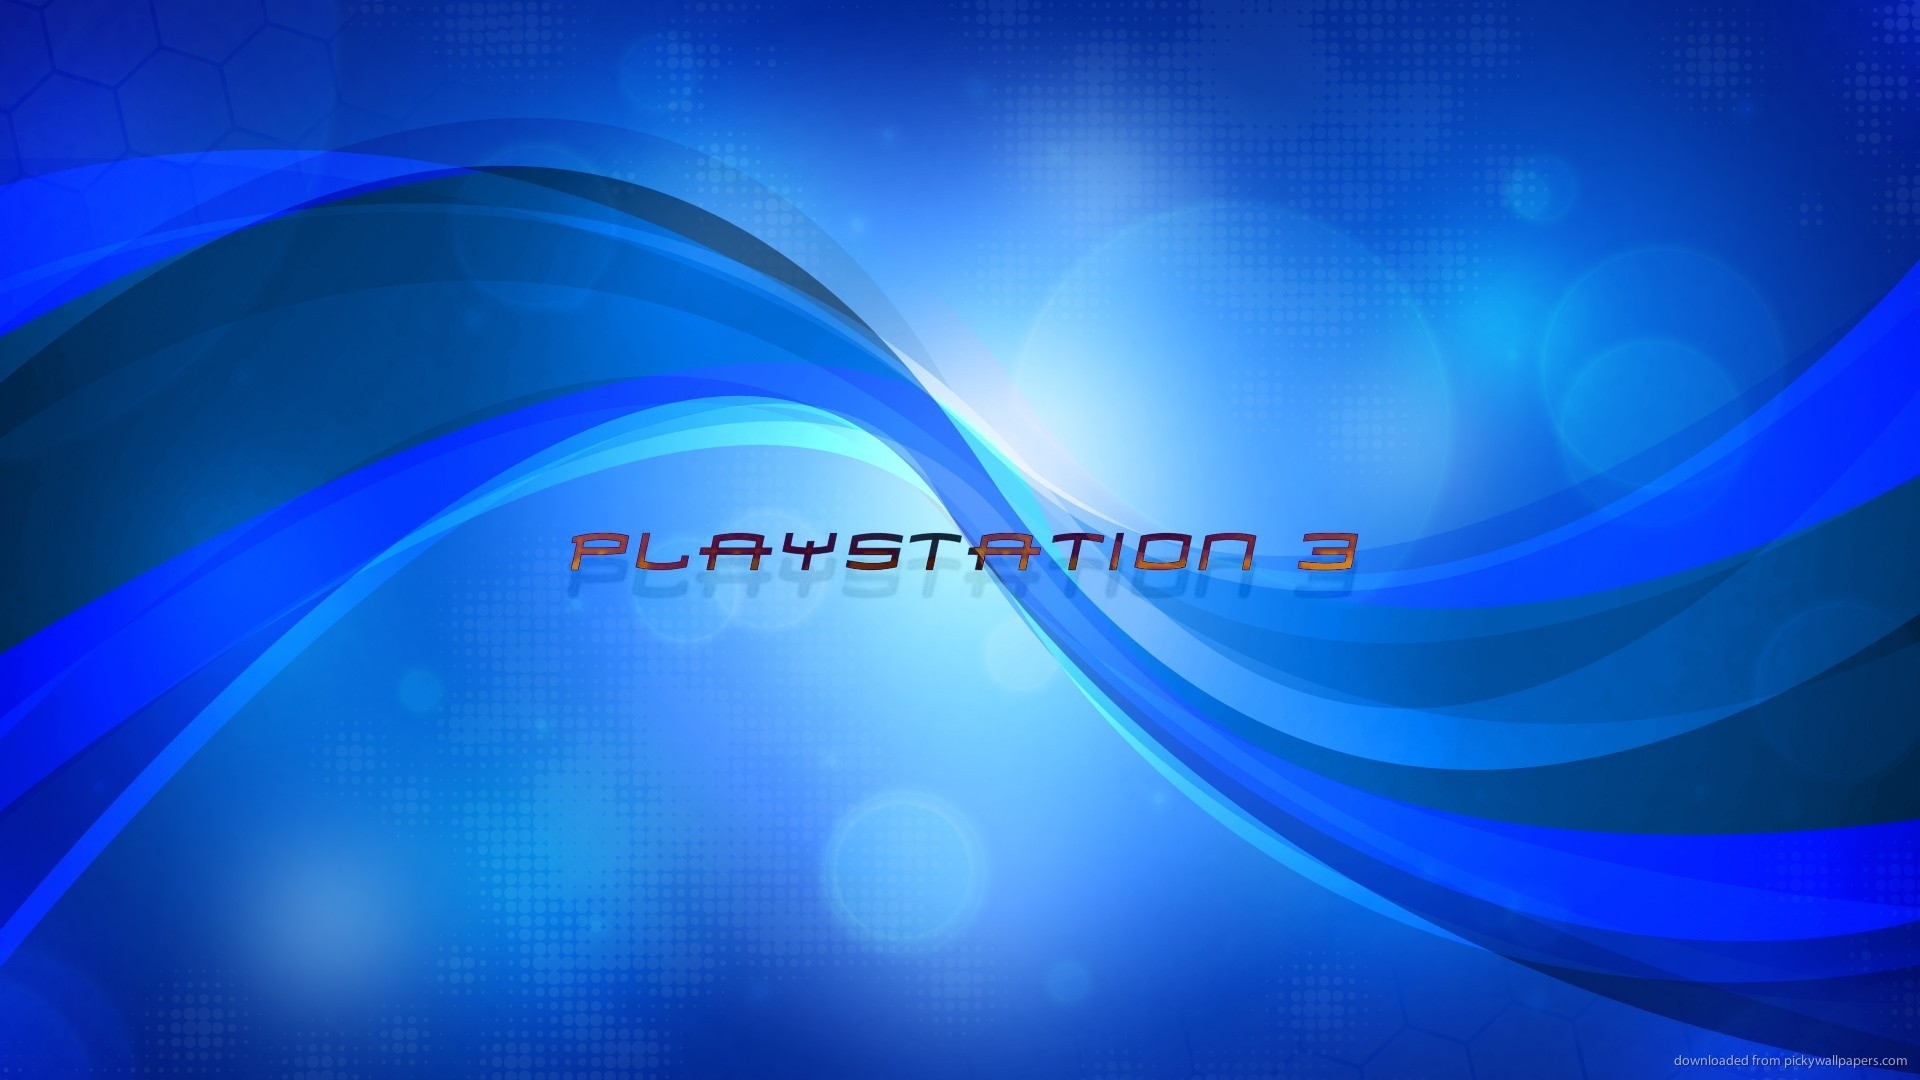 playstation 3 wallpapers ·①